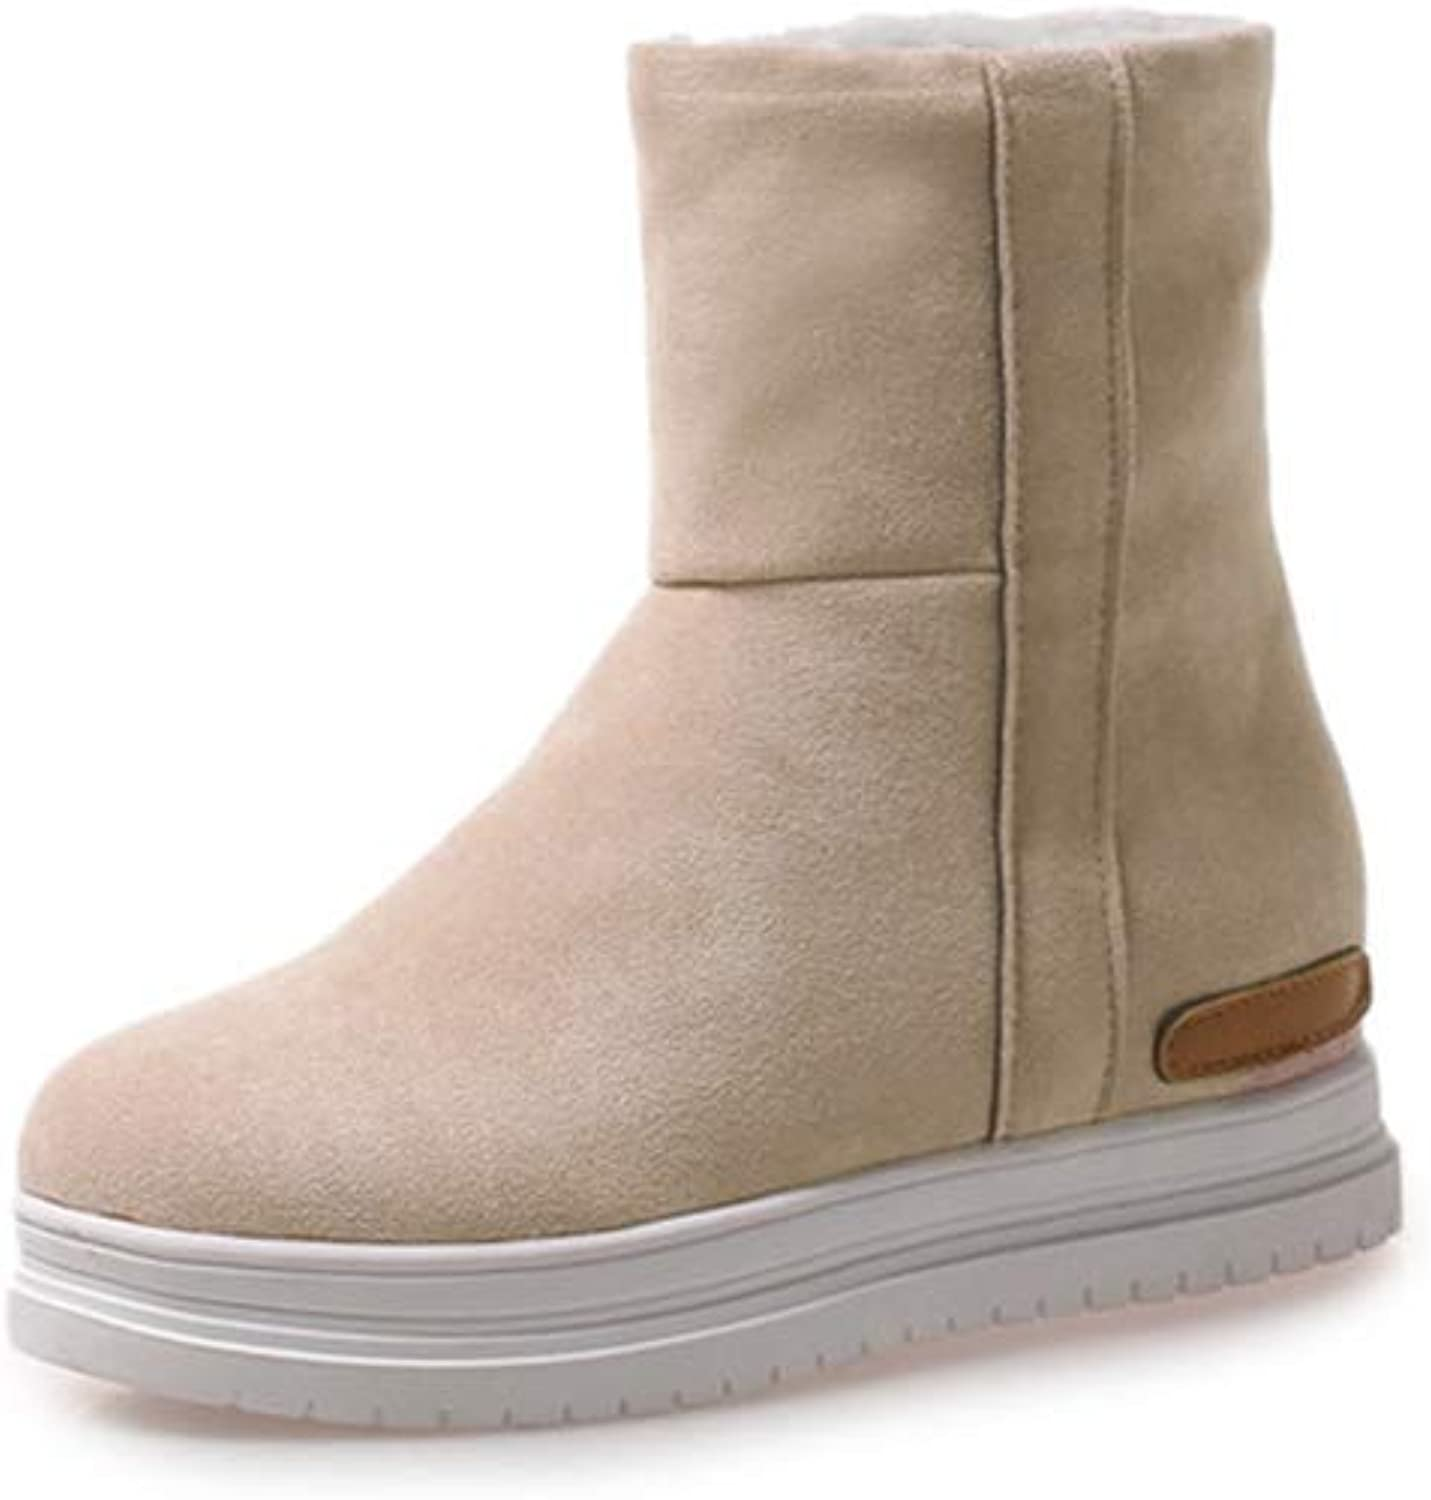 T-JULY Fashion Snow Boots Women Round Toe Flock Ankle Boots Keep Winter Slip on Dress Warm Winter Boots